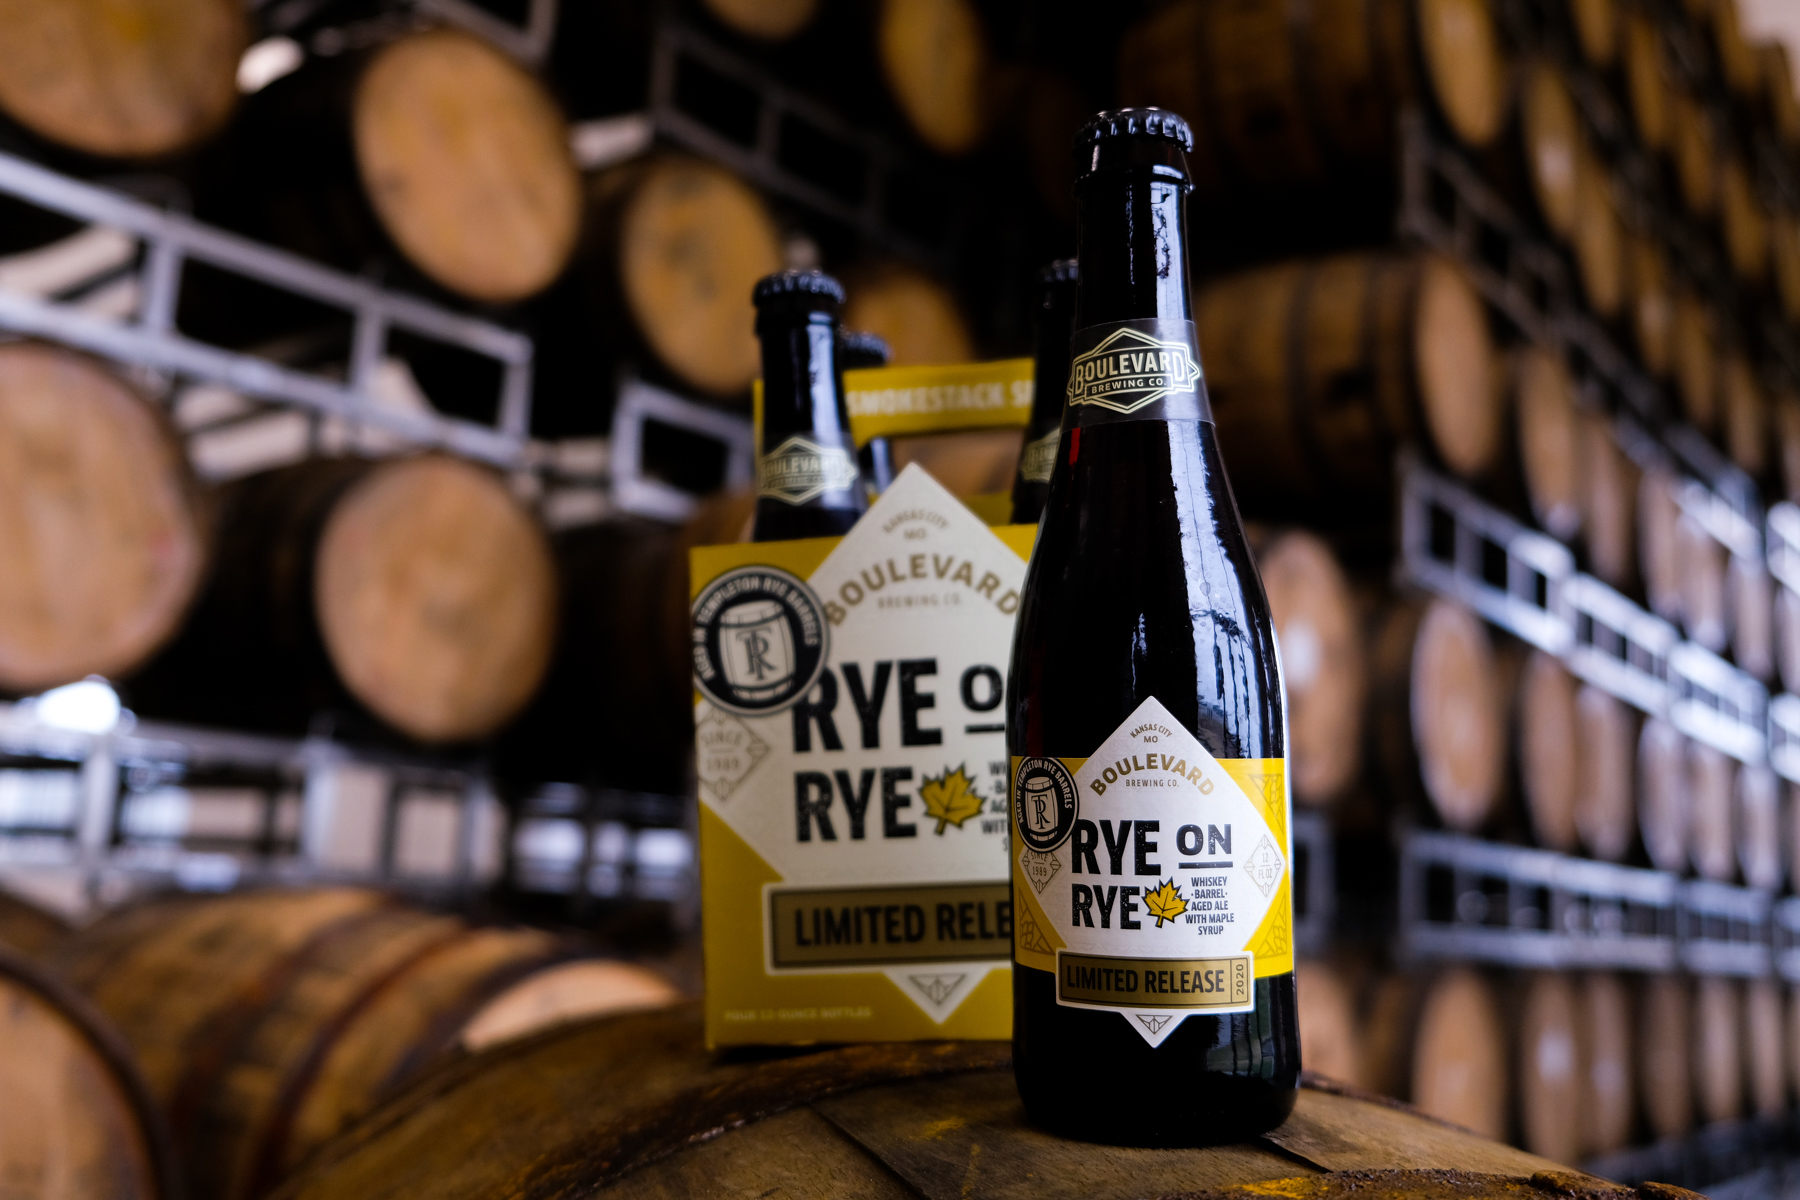 Introducing Rye on Rye Maple